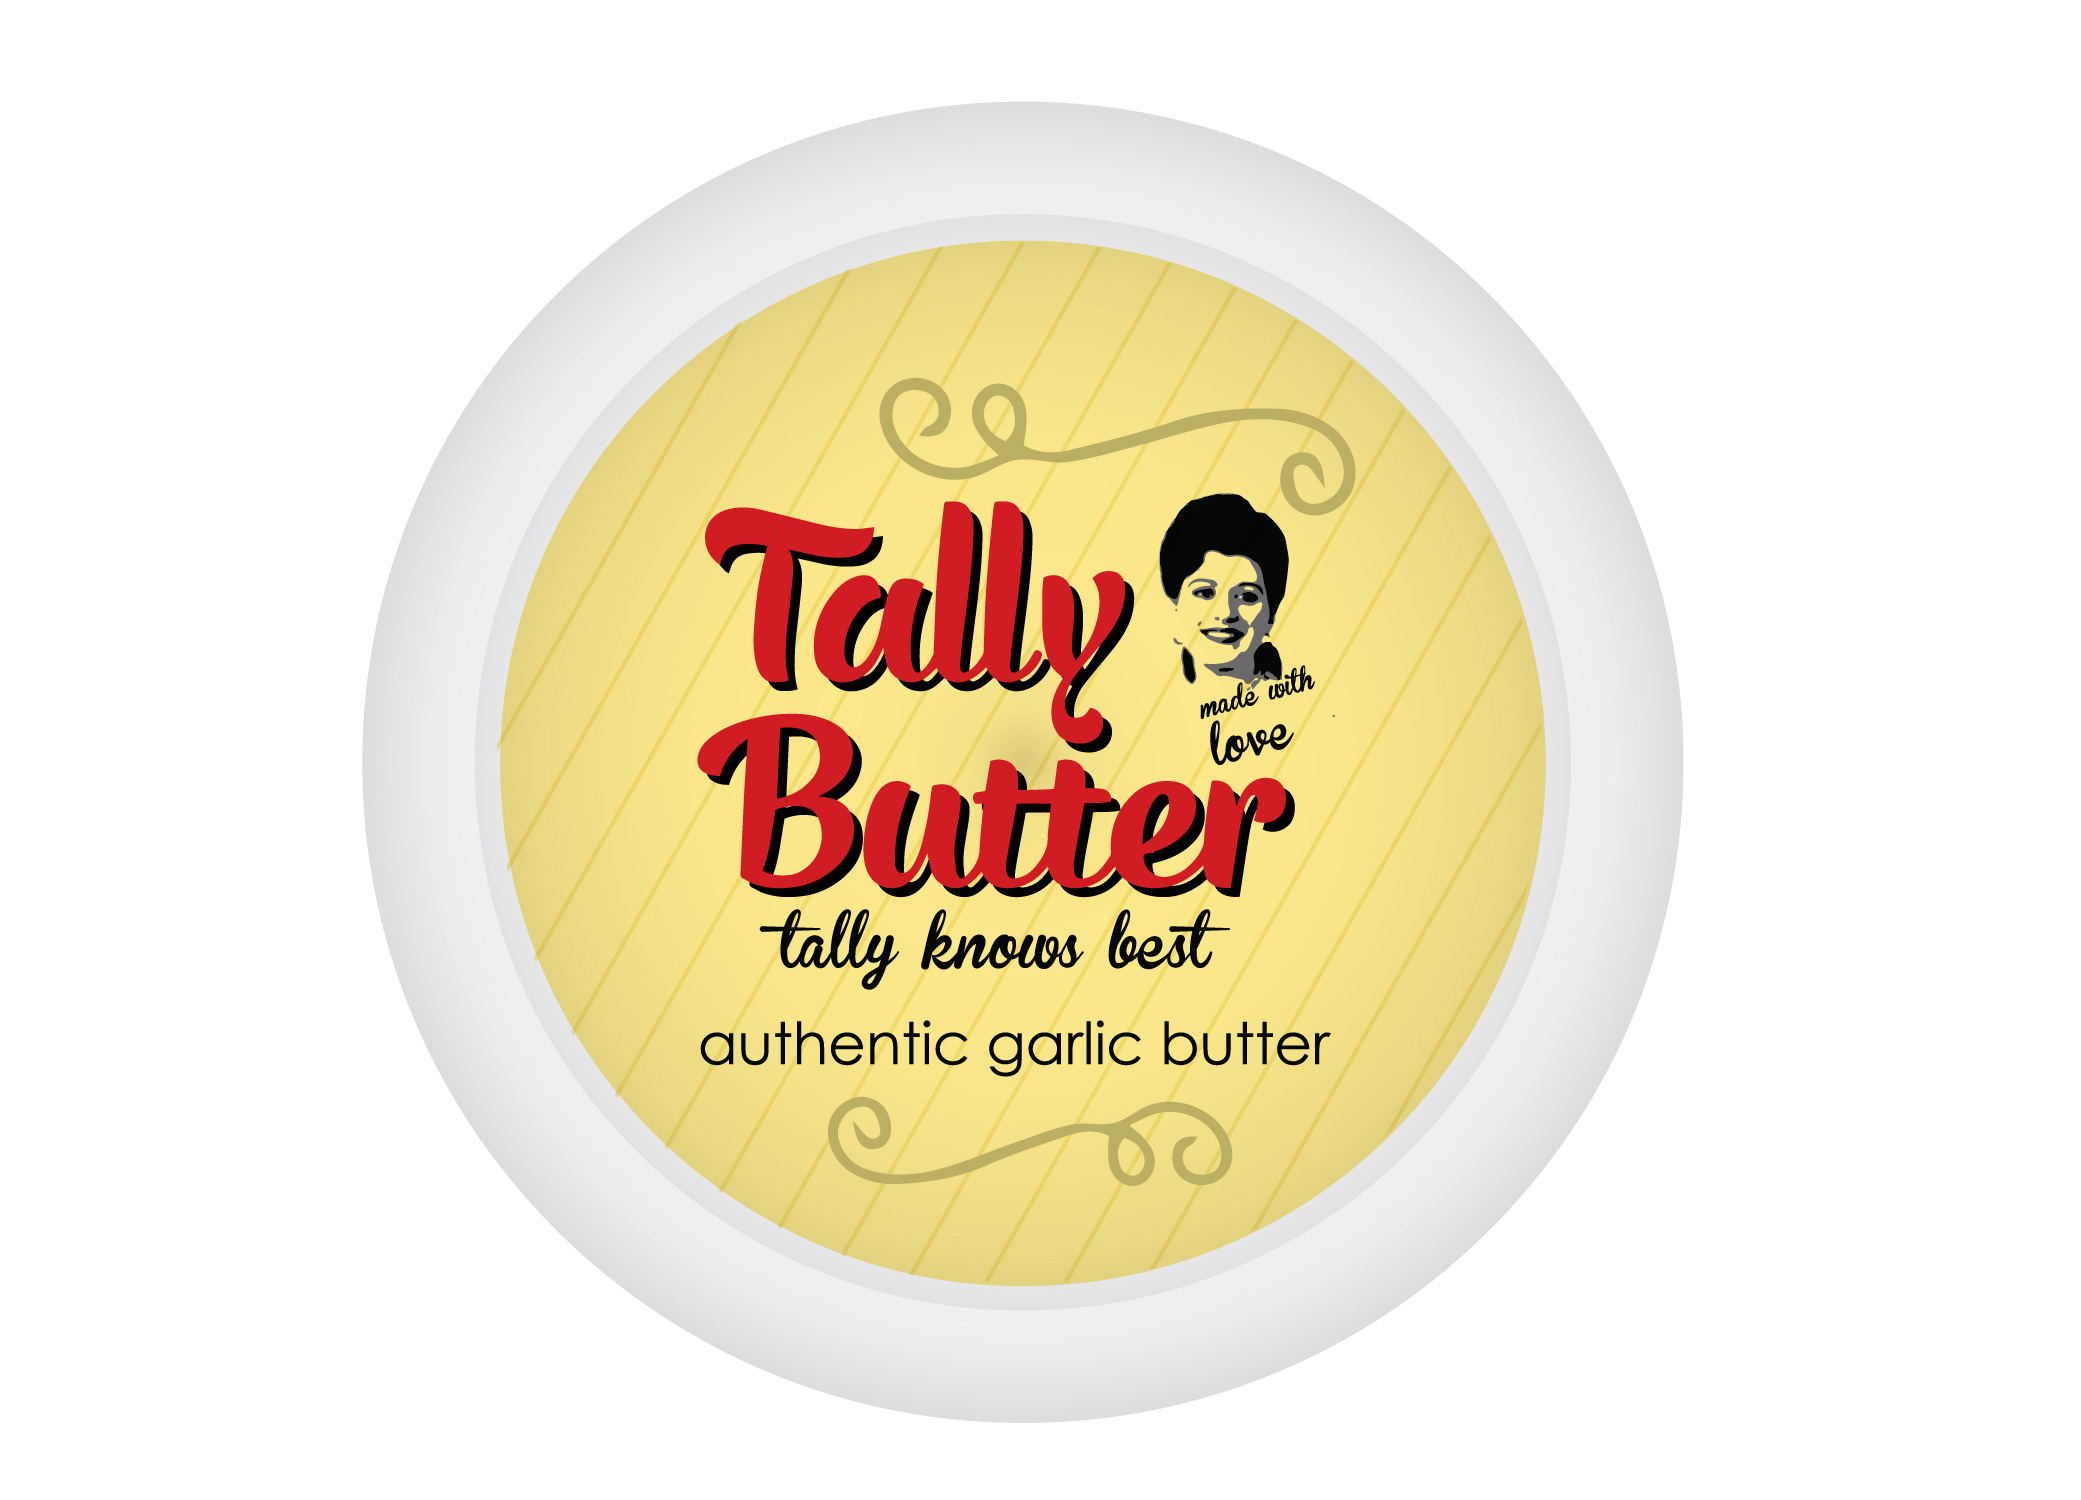 Tally Butter vintage-inspired packaging with logo over soft yellow canister and swirls and garlic clove design elements.